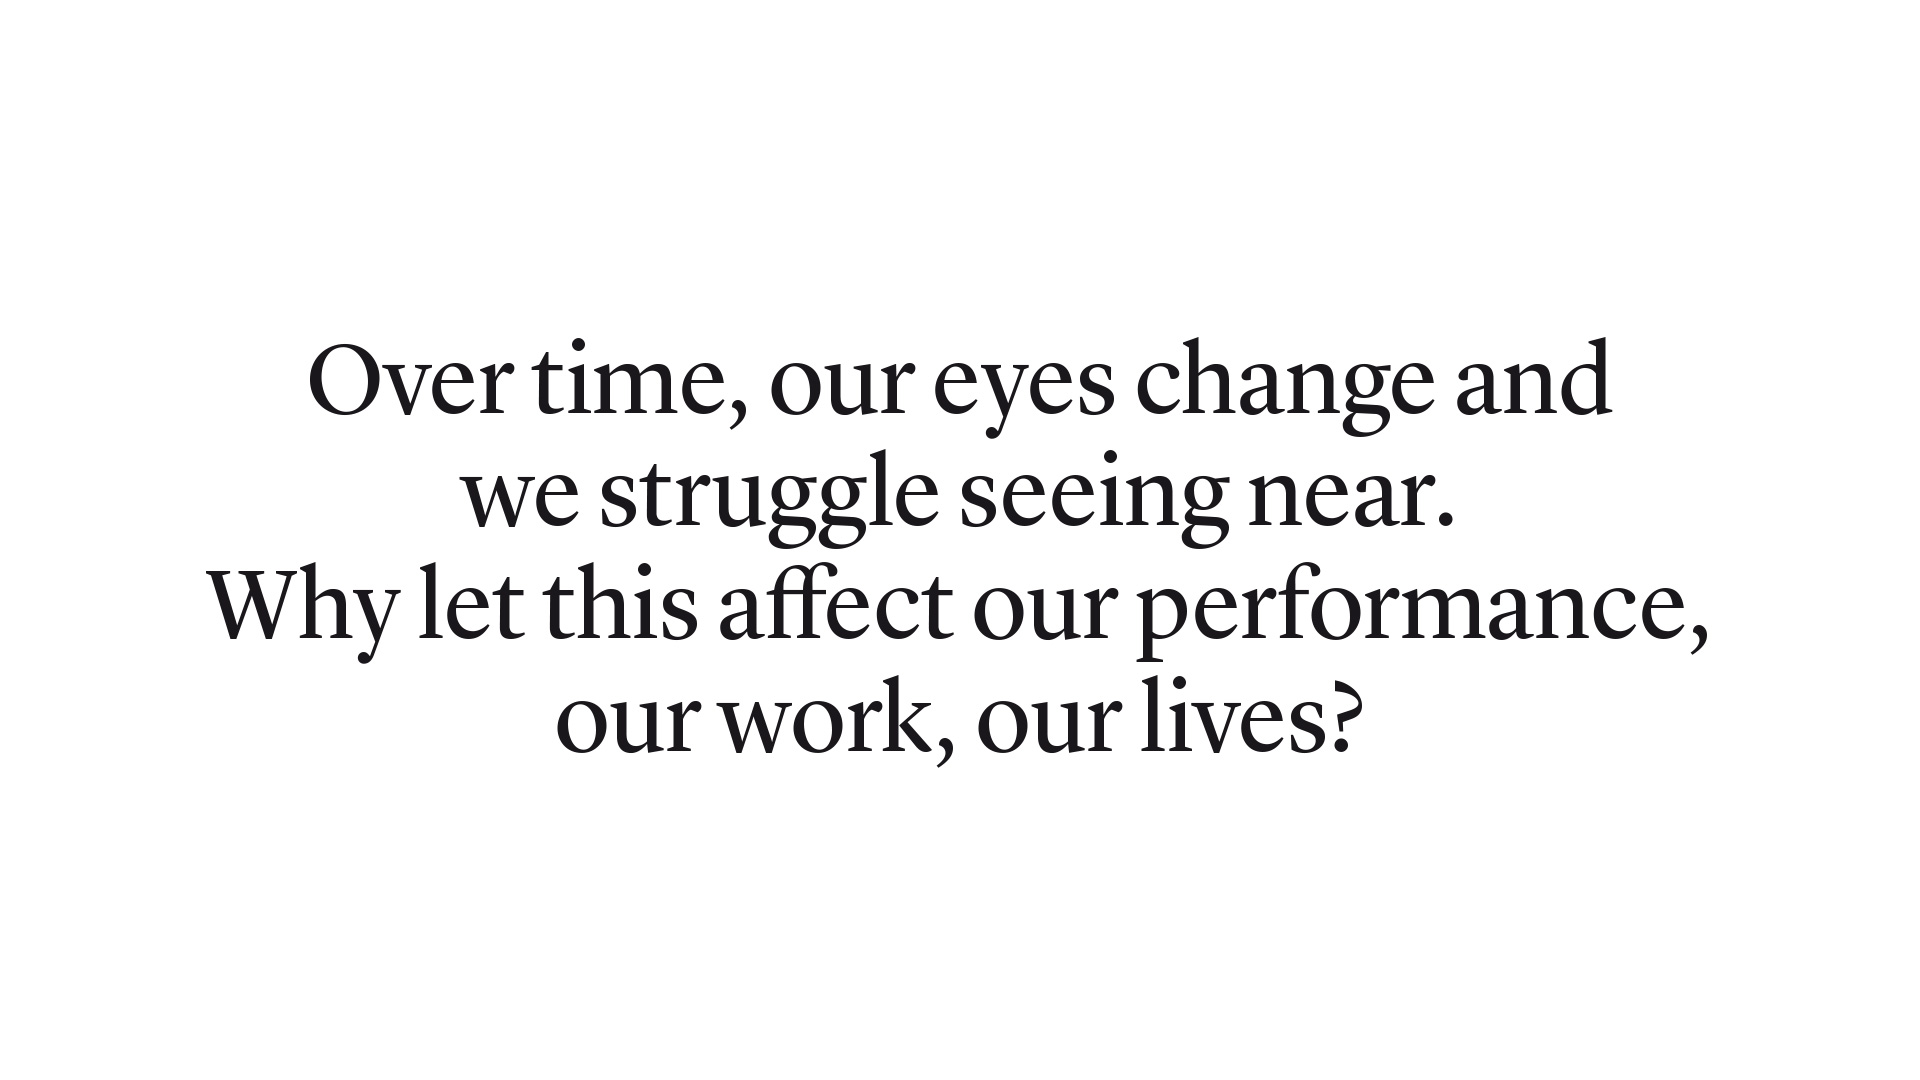 Over time, our eyes change and we struggle seeing near. Why let this affect our performance, our work, our lives